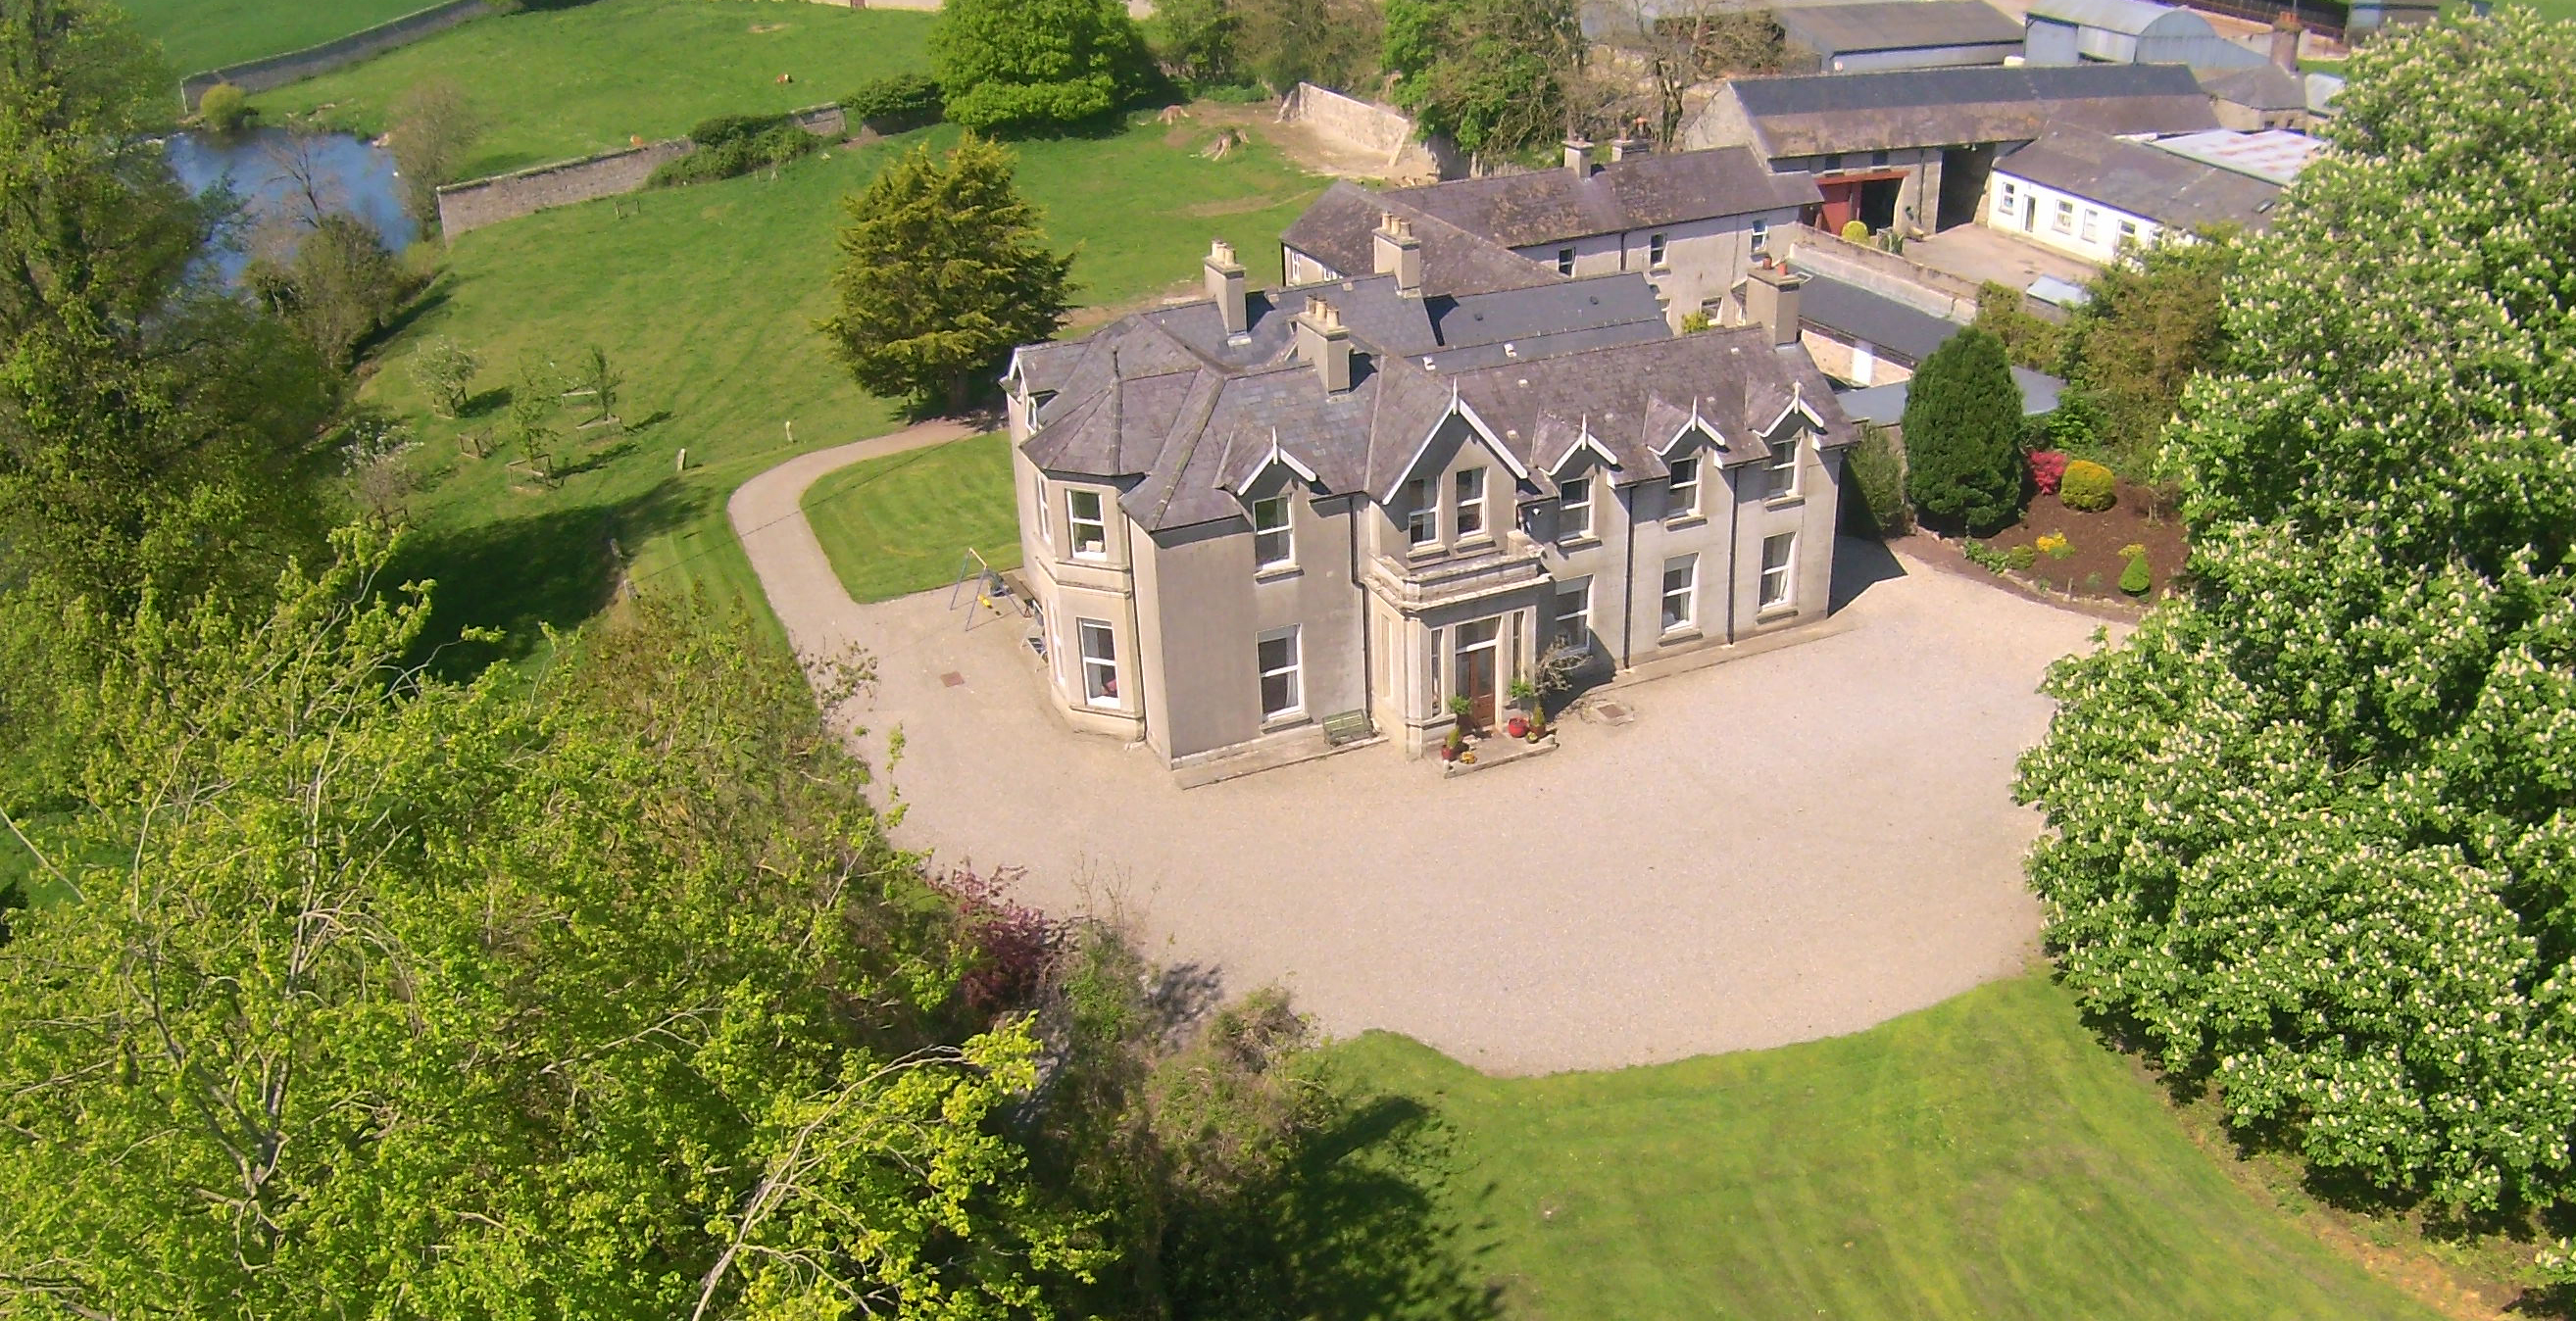 Land for Sale at Aghade Estate Carlow, Leinster, Ireland